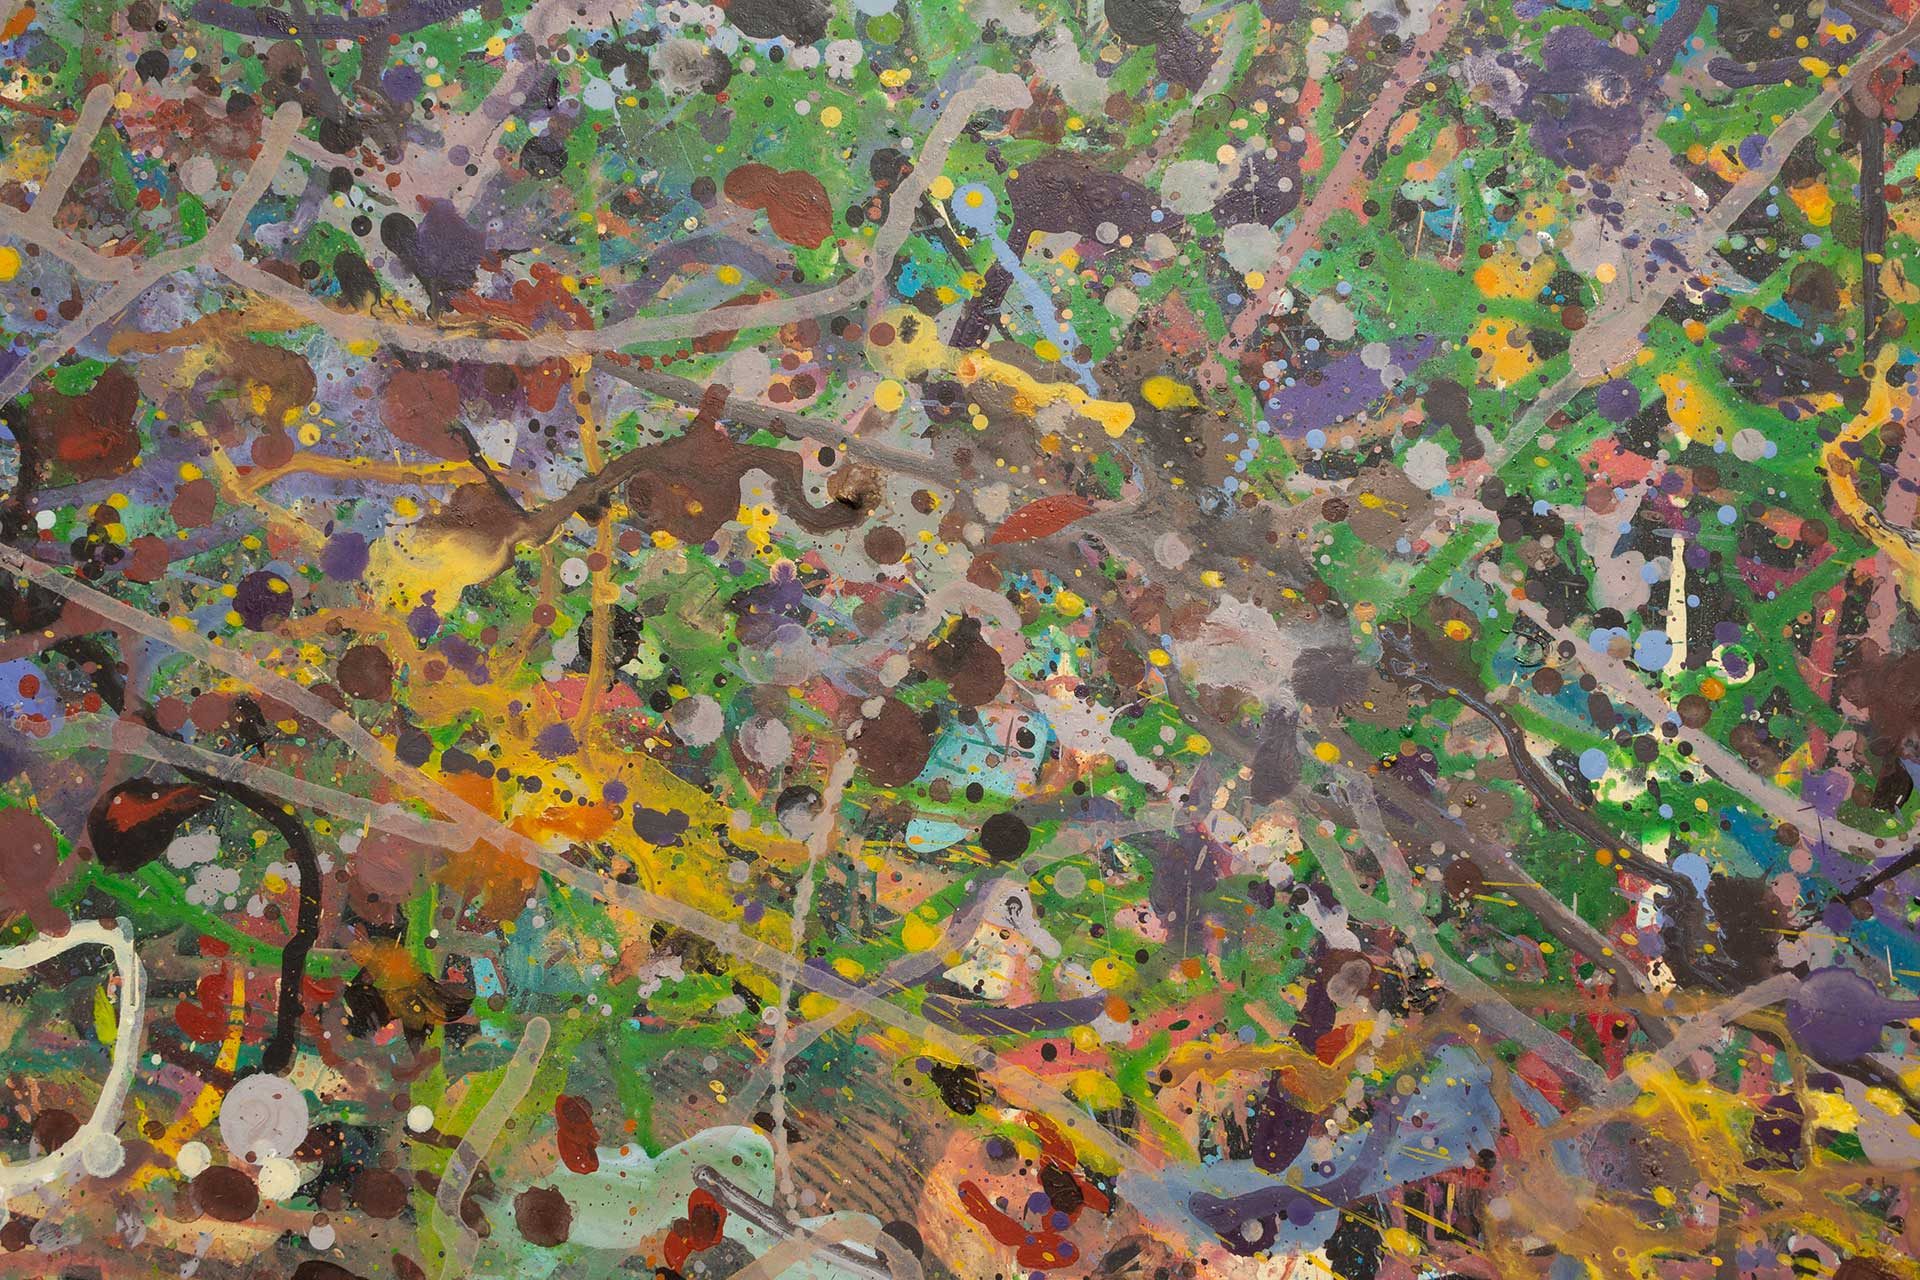 Abstract expressionism painting - Field of flowers - Yarra Glen #1 - Detail 5